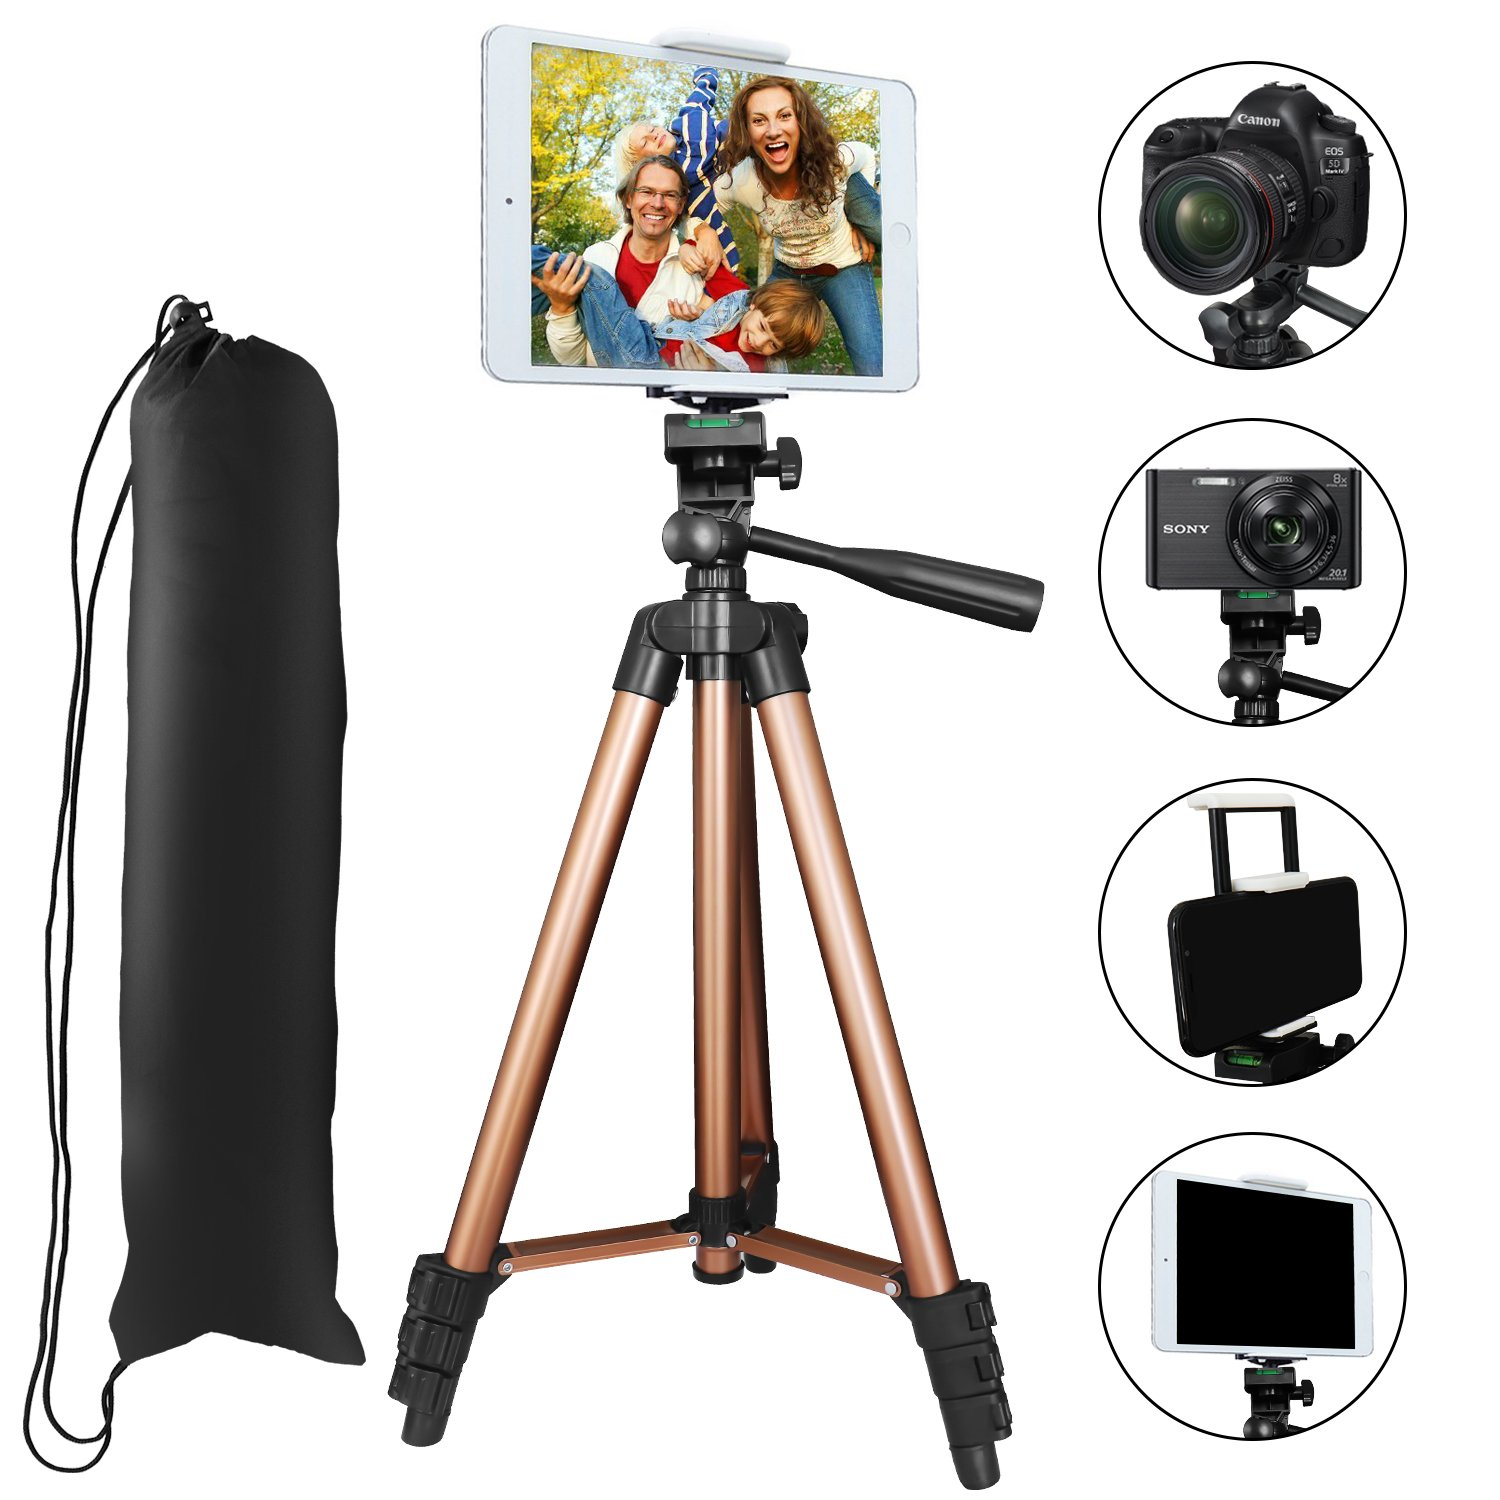 Tripod for iPad and iPhone, PEYOU 50'' Inch Portable Lightweight Aluminum Phone Camera Tablet Tripod with 2 in 1 Universal Mount Holder for Smartphone (Width 2-3.3'') and Tablet (Width 4.3-7.2'') by Peyou